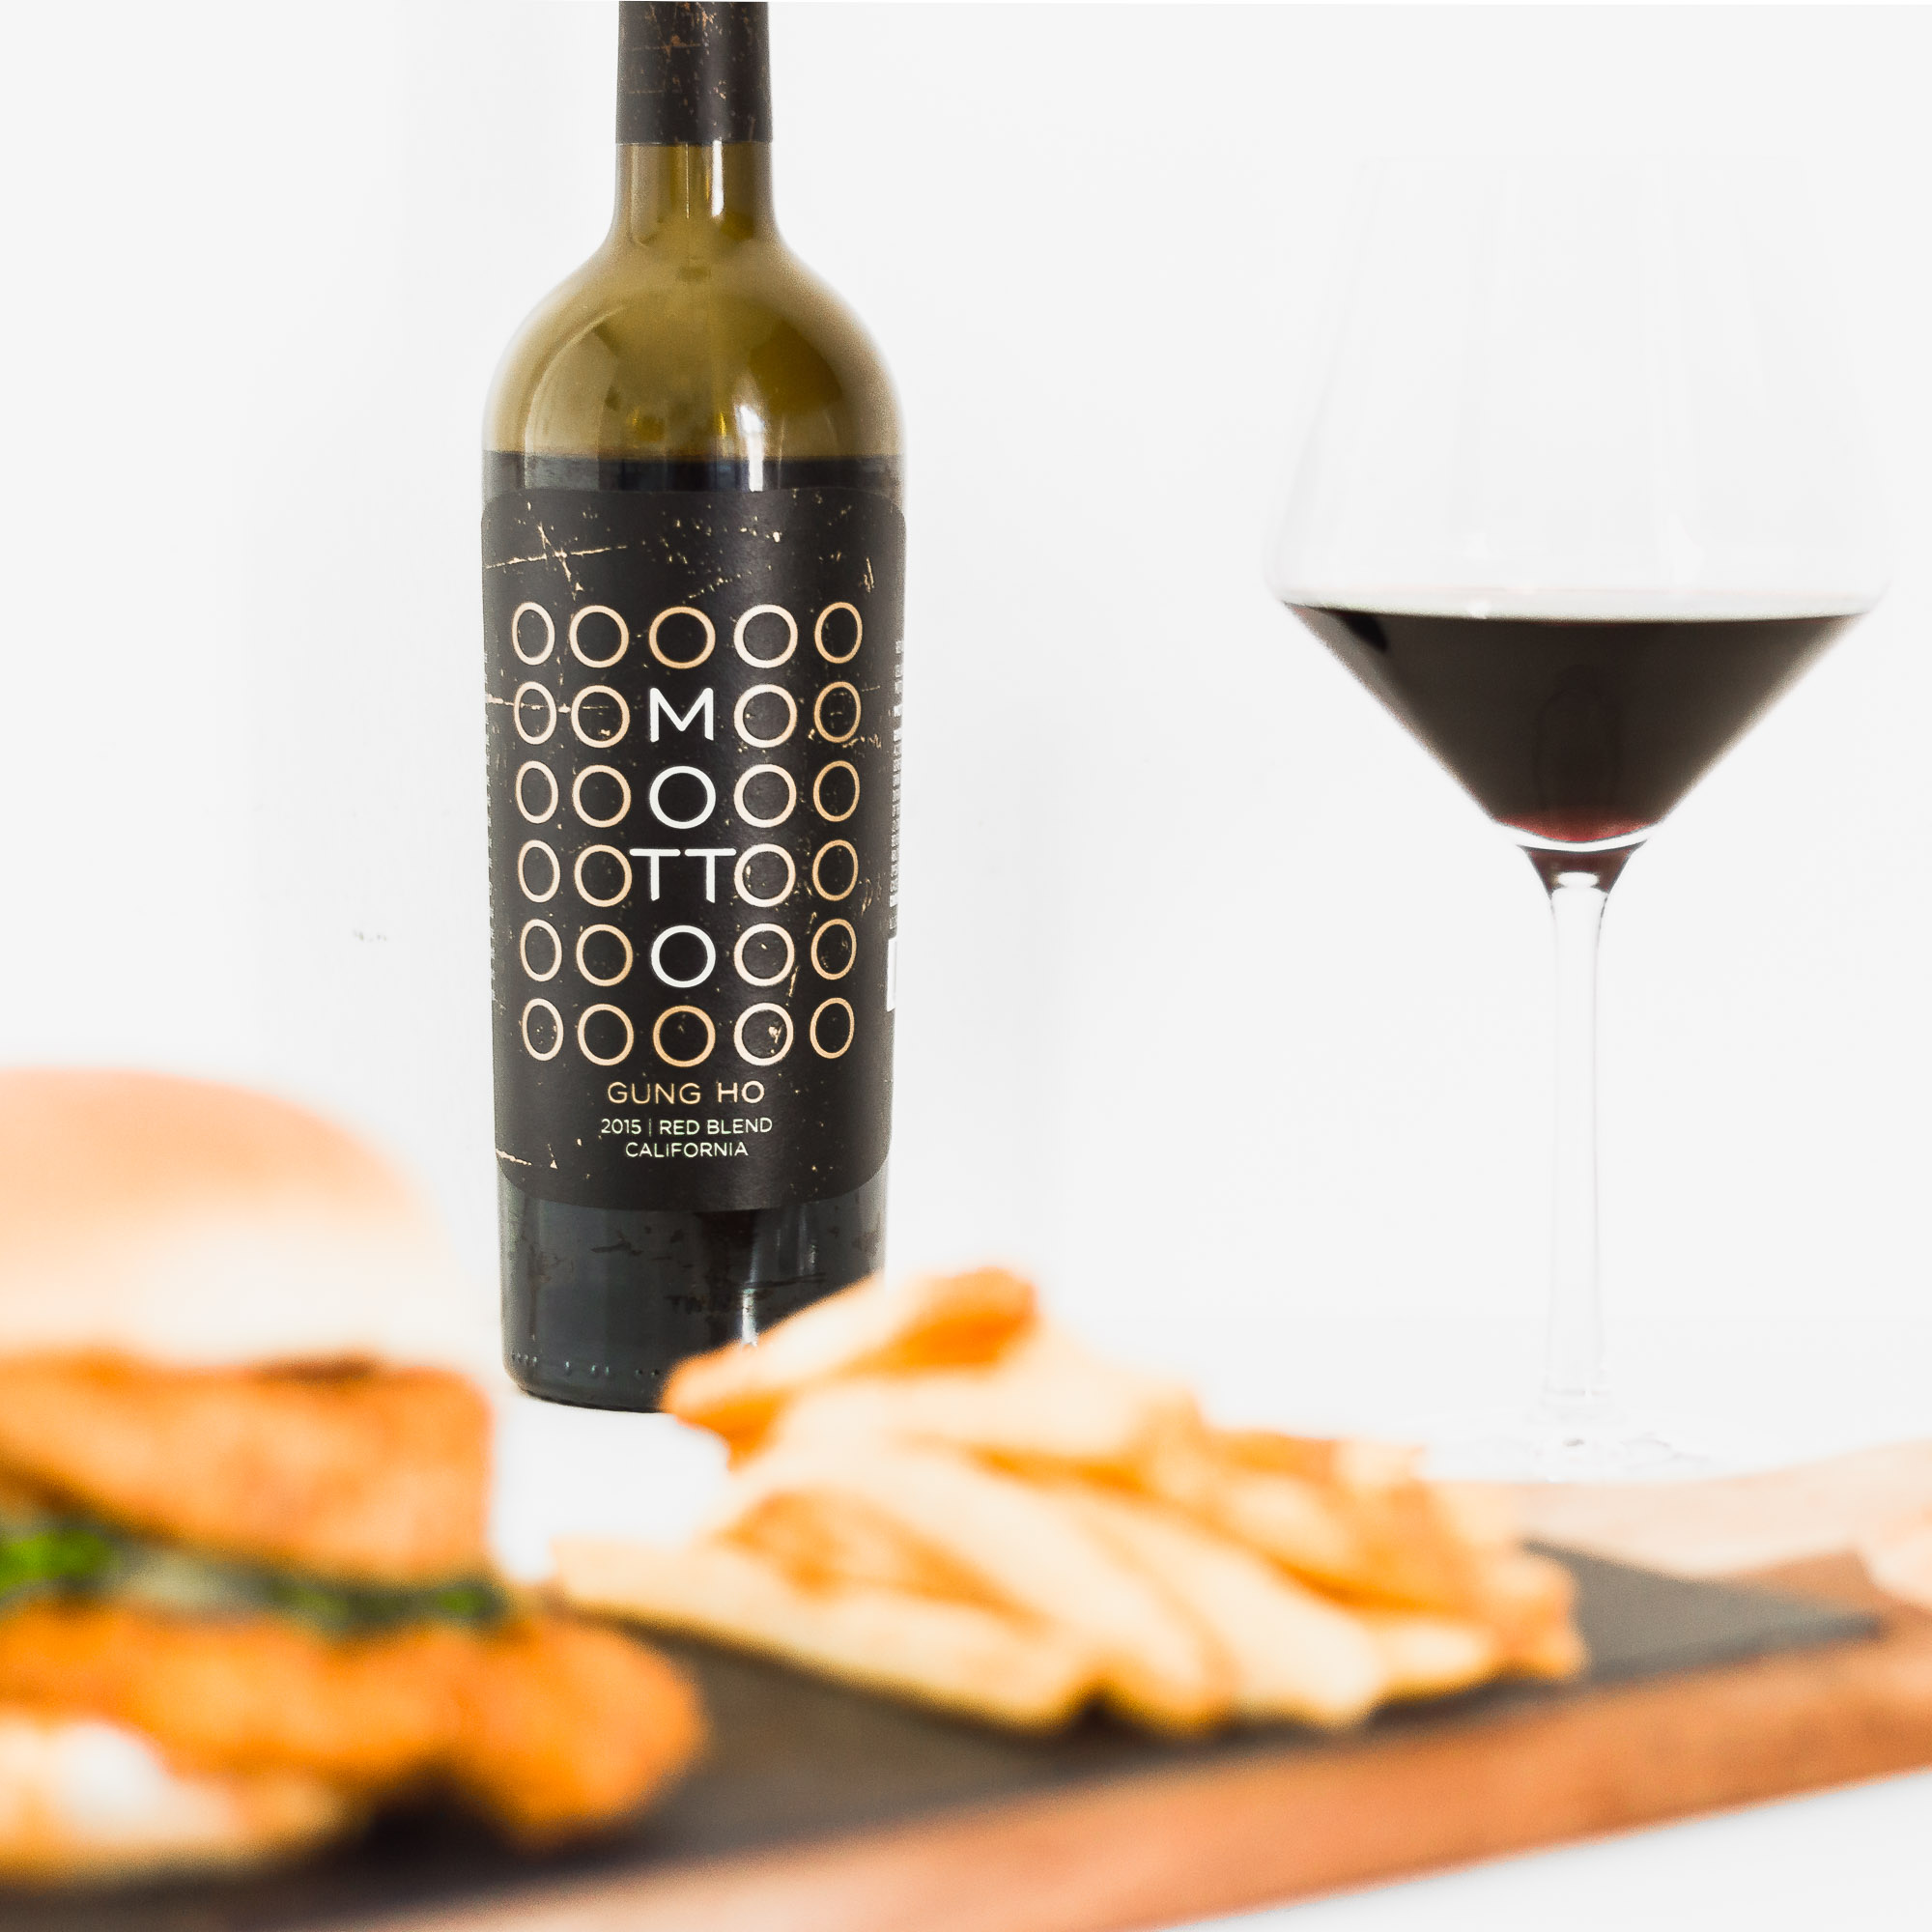 gung ho red blend motto wines